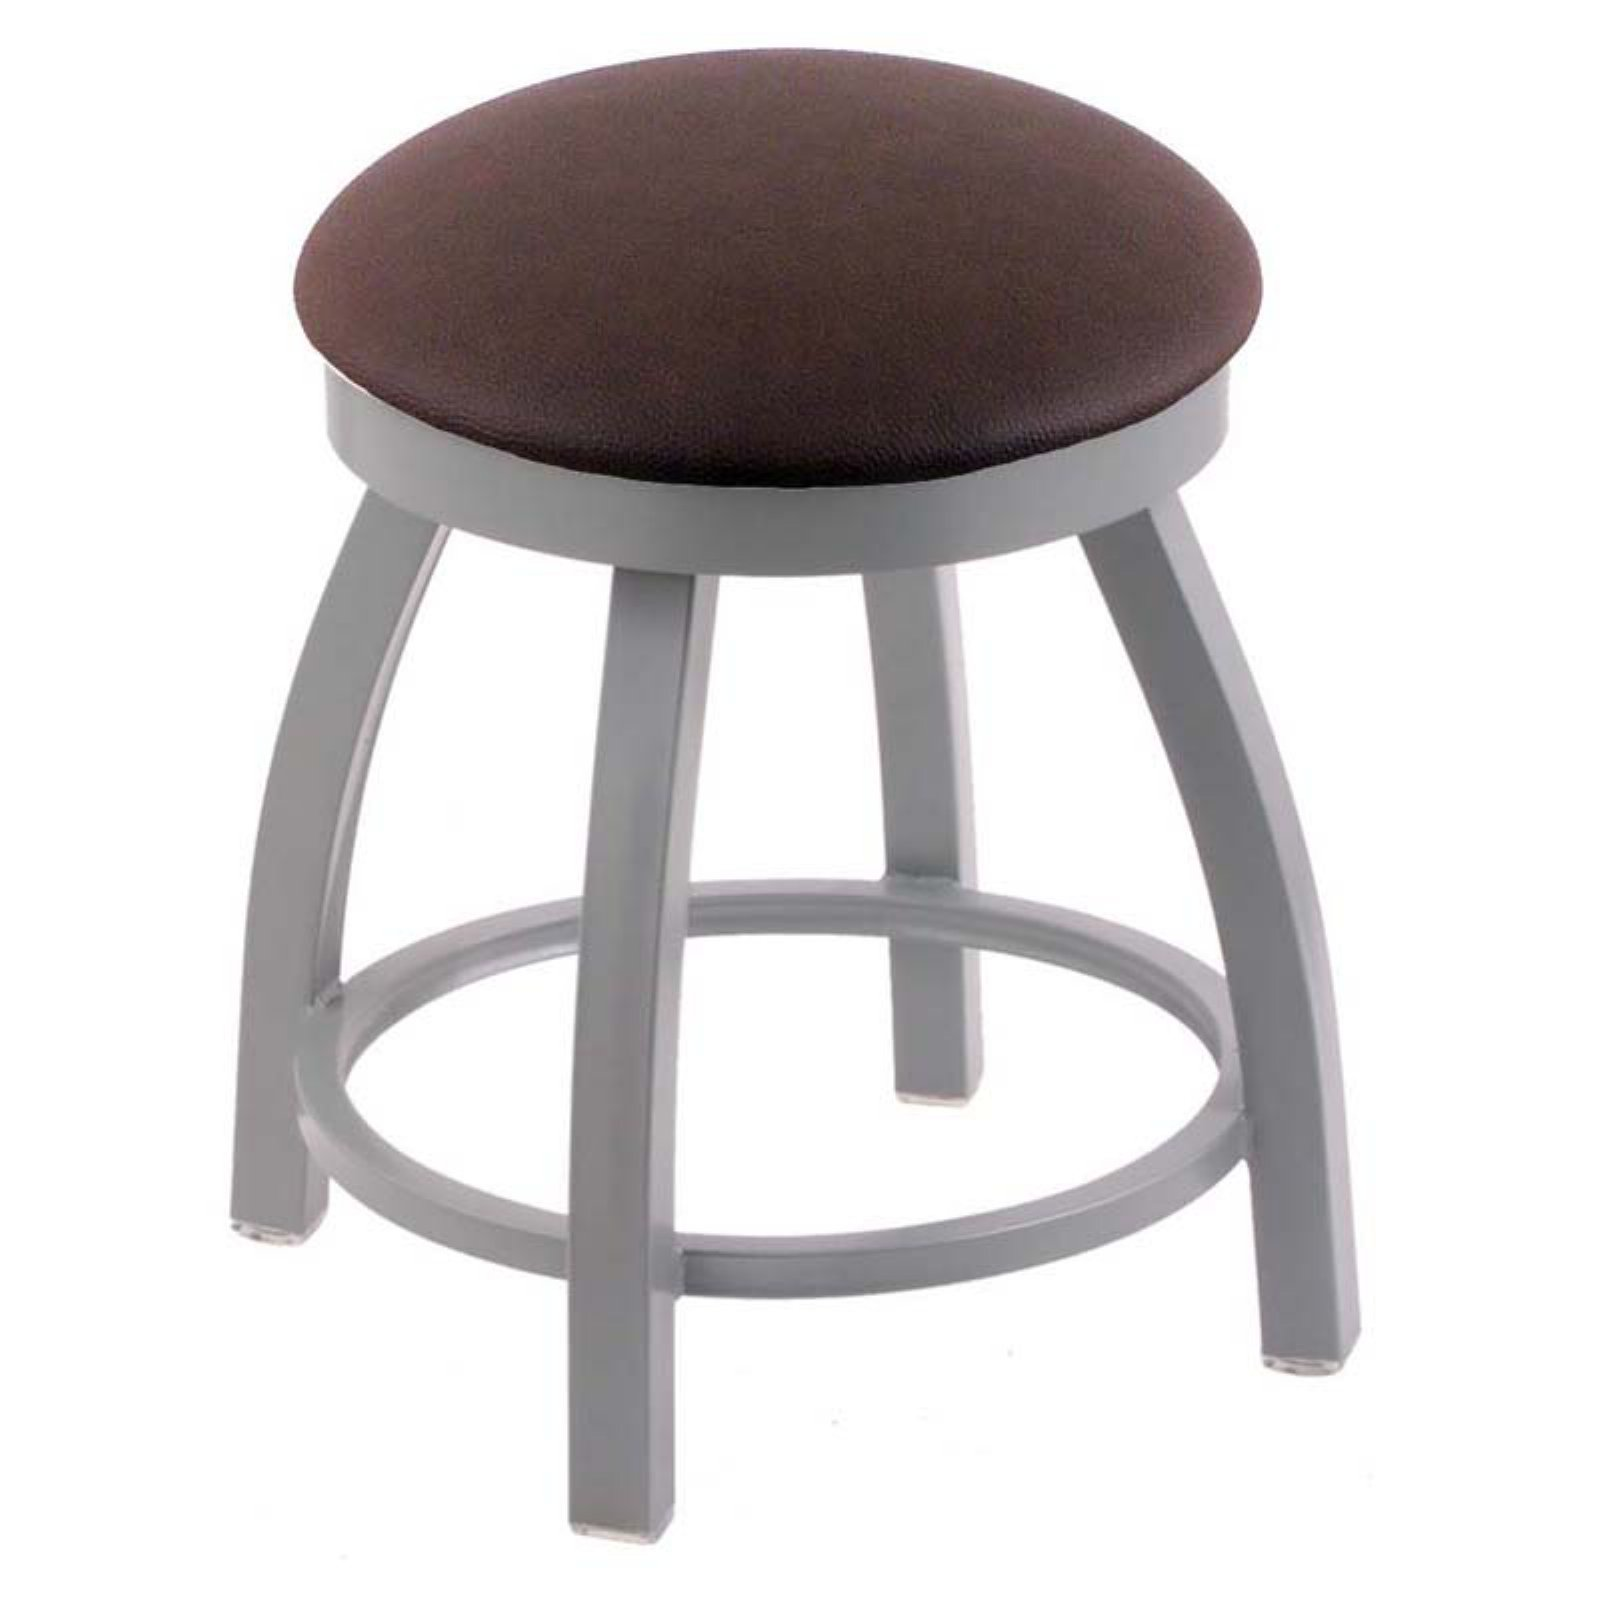 Holland Bar Stool Misha Metal Swivel Dining Stool with Faux Leather Seat